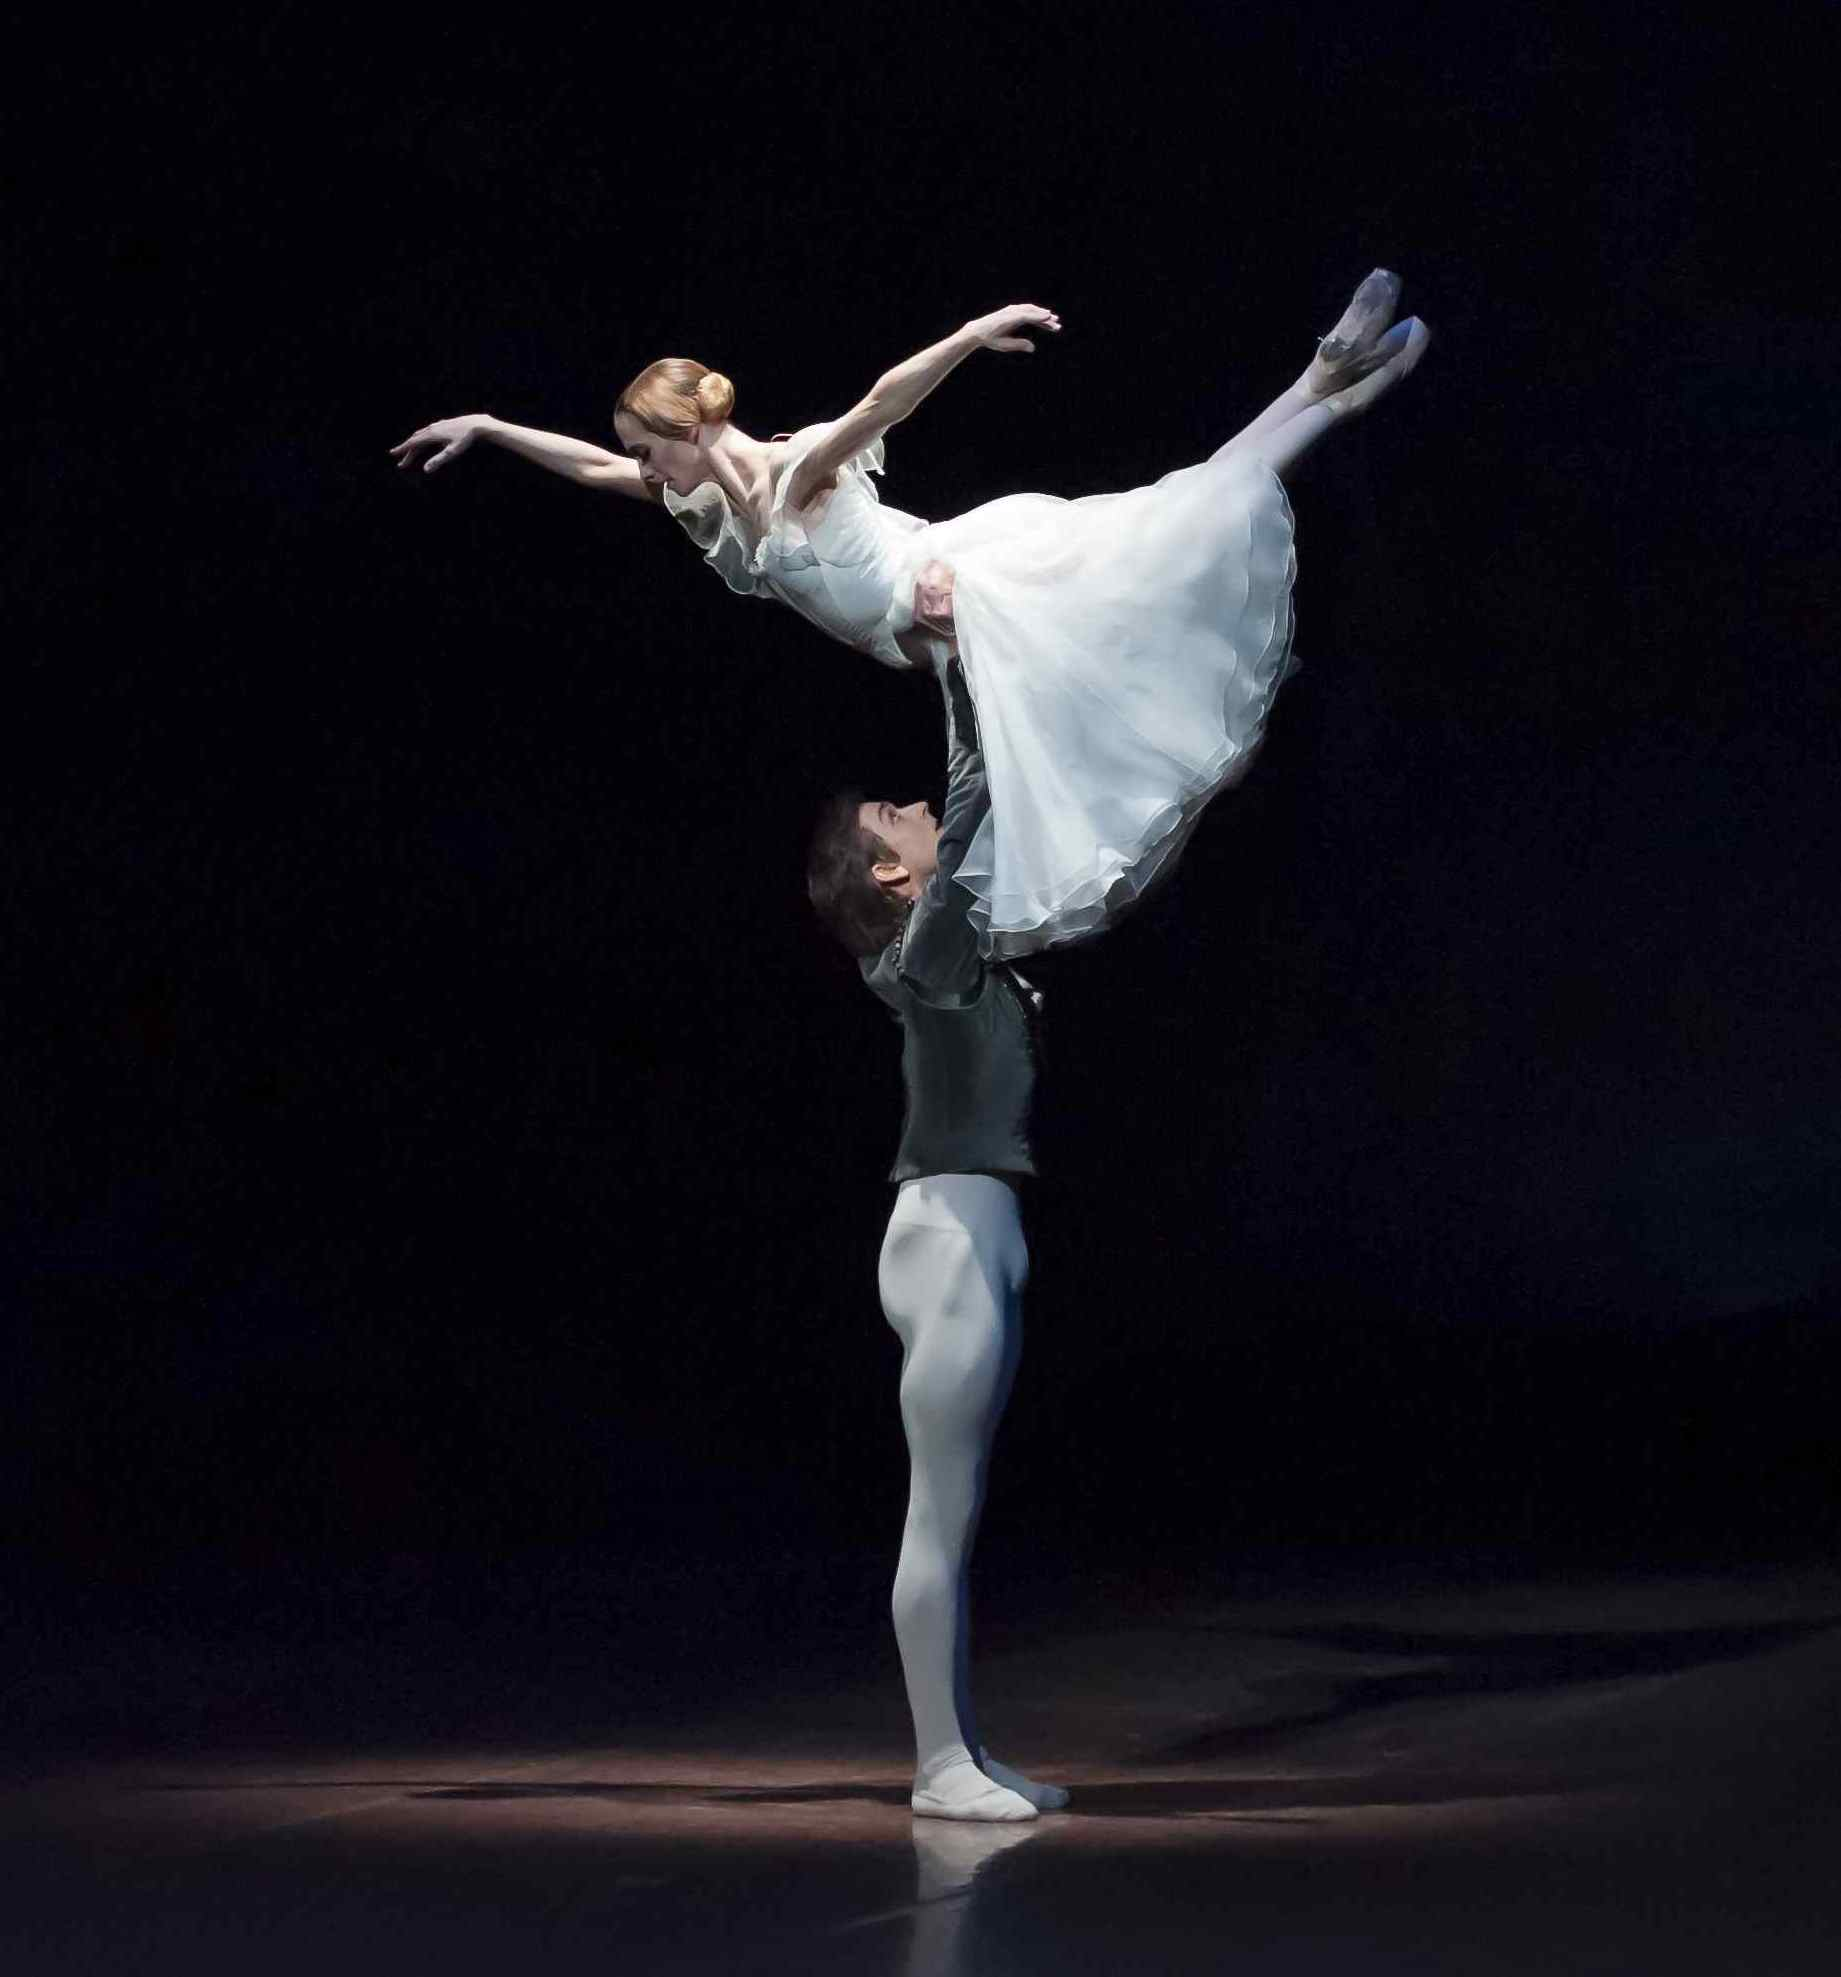 Alicia Amatriain and Friedemann Vogel in Giselle (c) Roman Novitzky